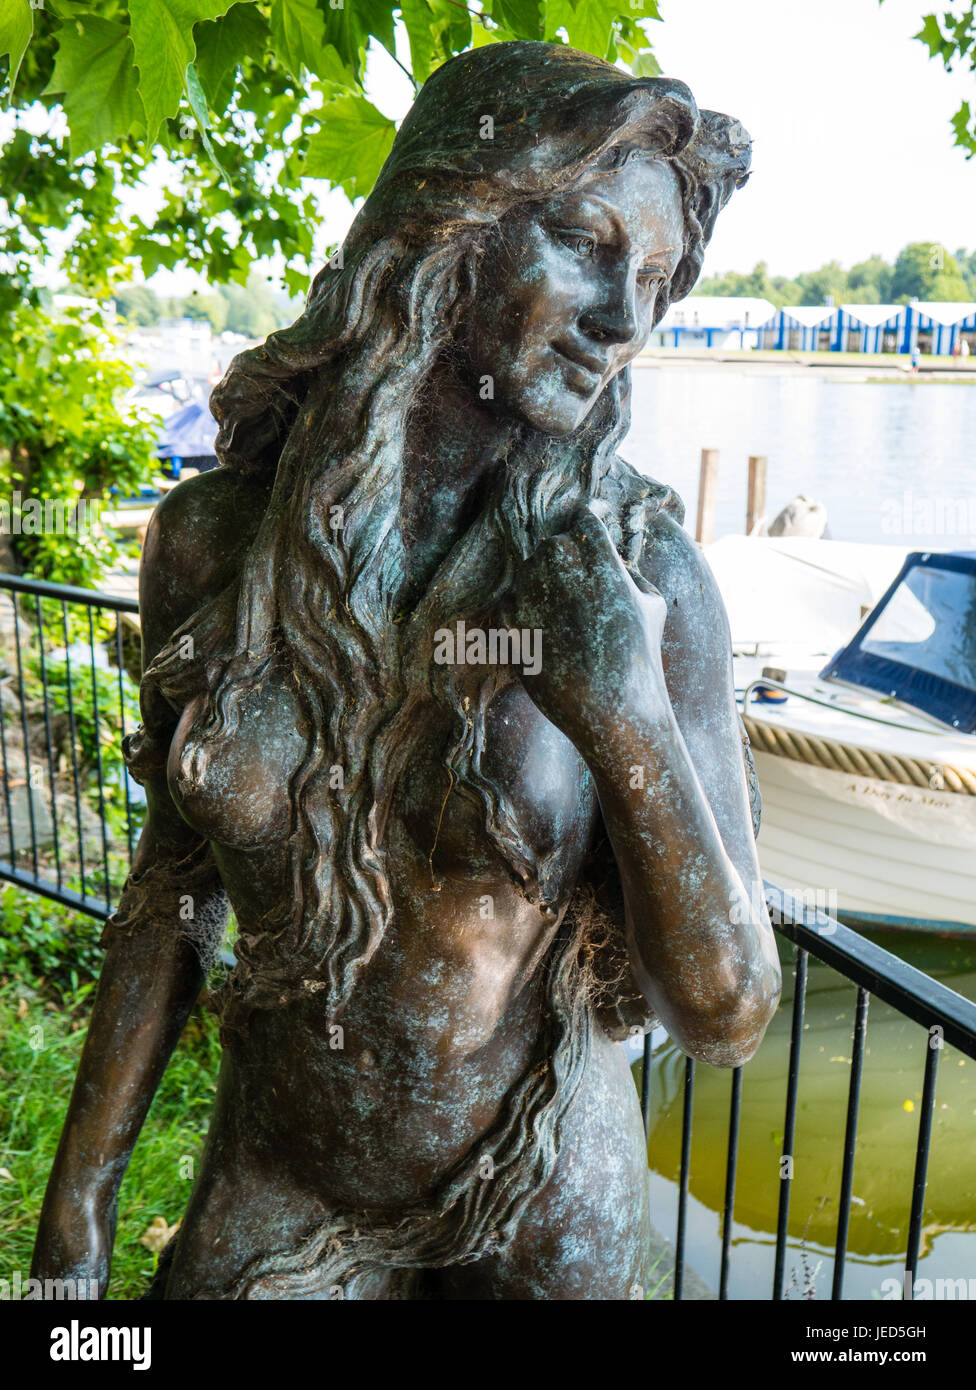 Mermaid Statue, Henley-on-Thames, Oxfordshire, England - Stock Image